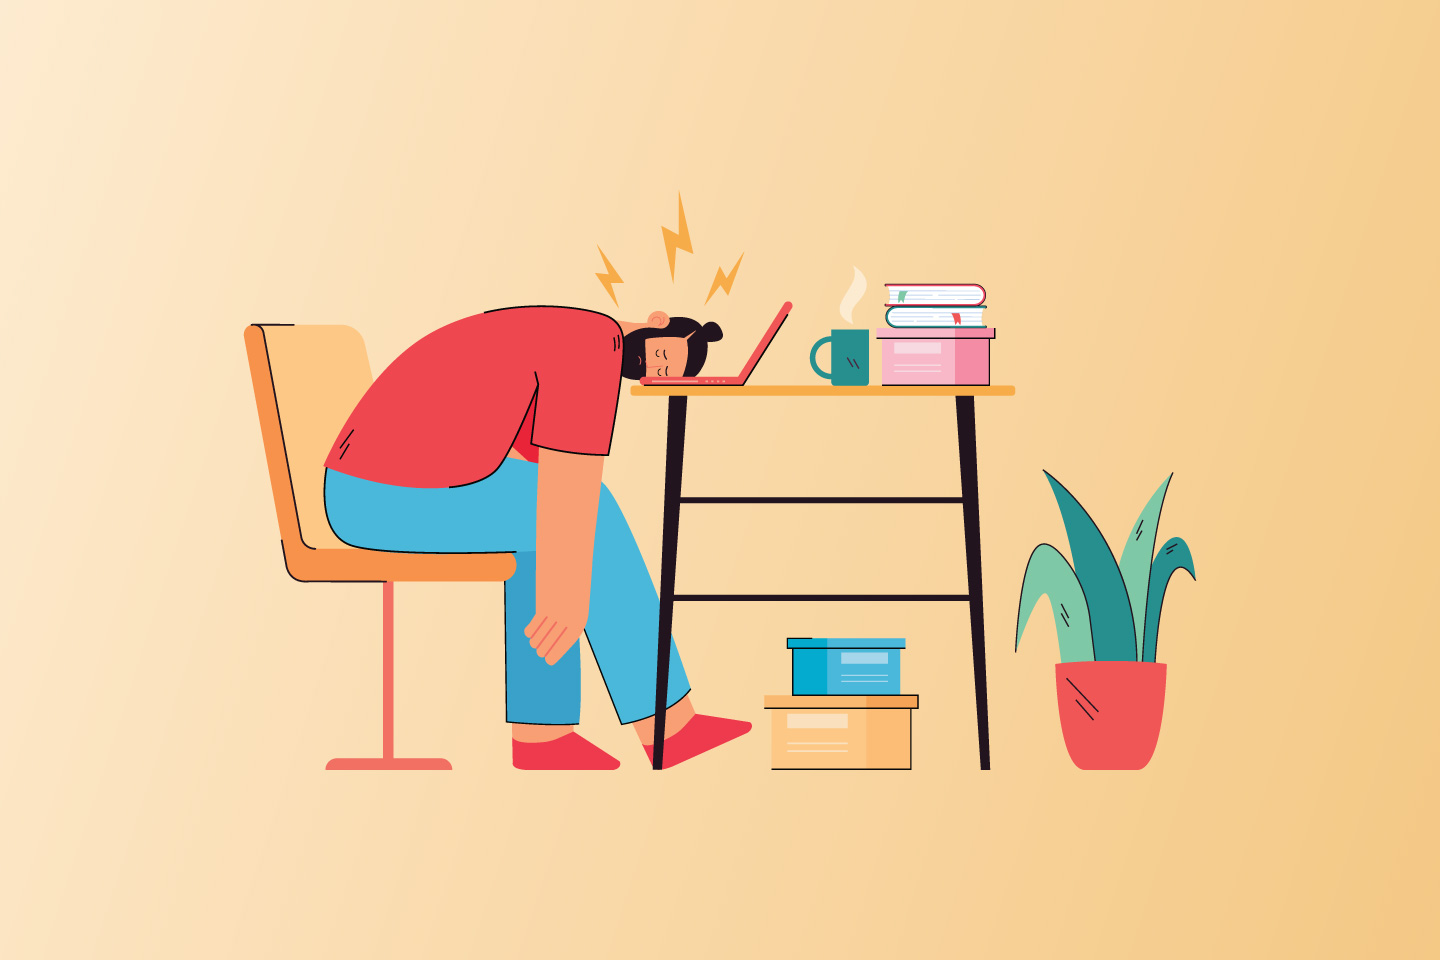 Illustration of a frustrated writer laying their head on a laptop keyboard